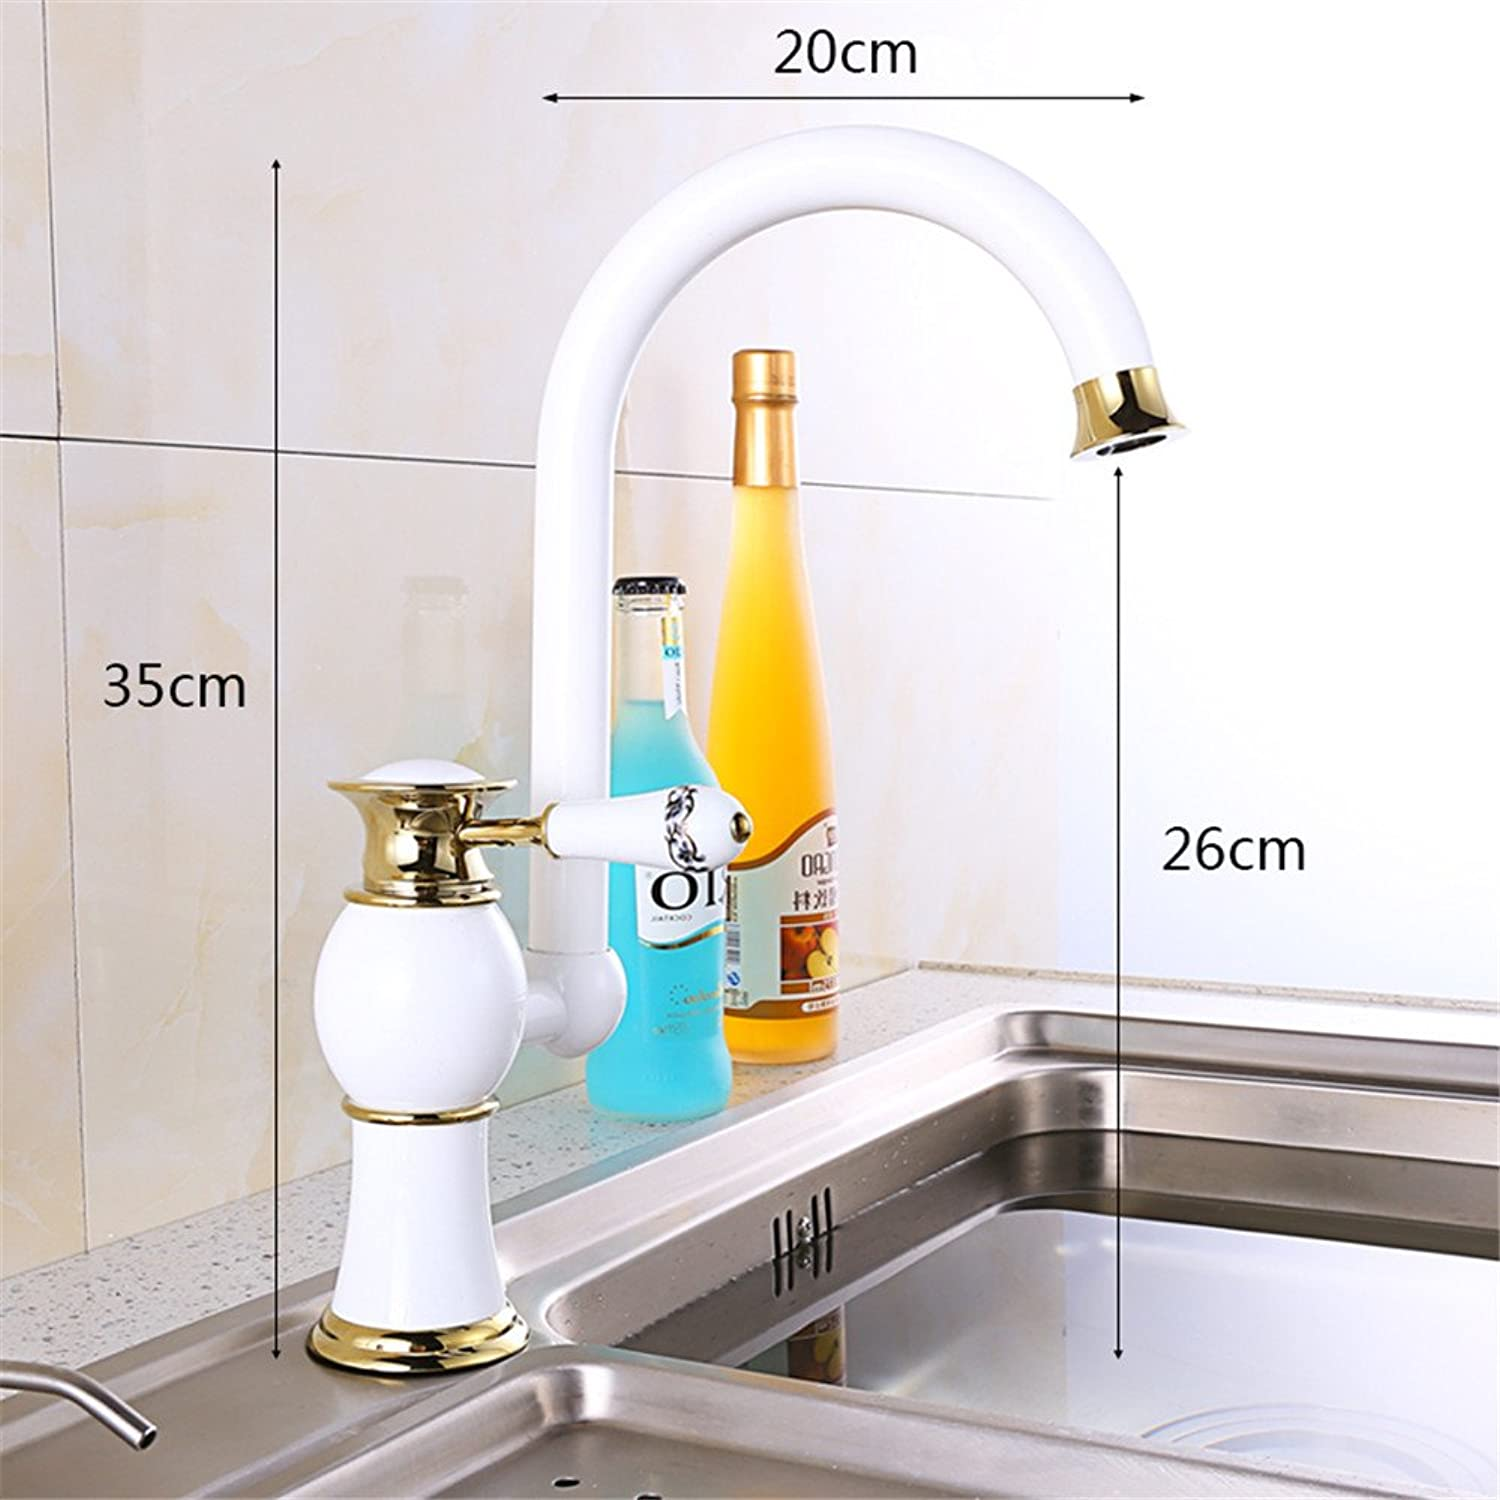 All copper porcelain hot and cold redation KITCHEN FAUCET C retro bench Basin